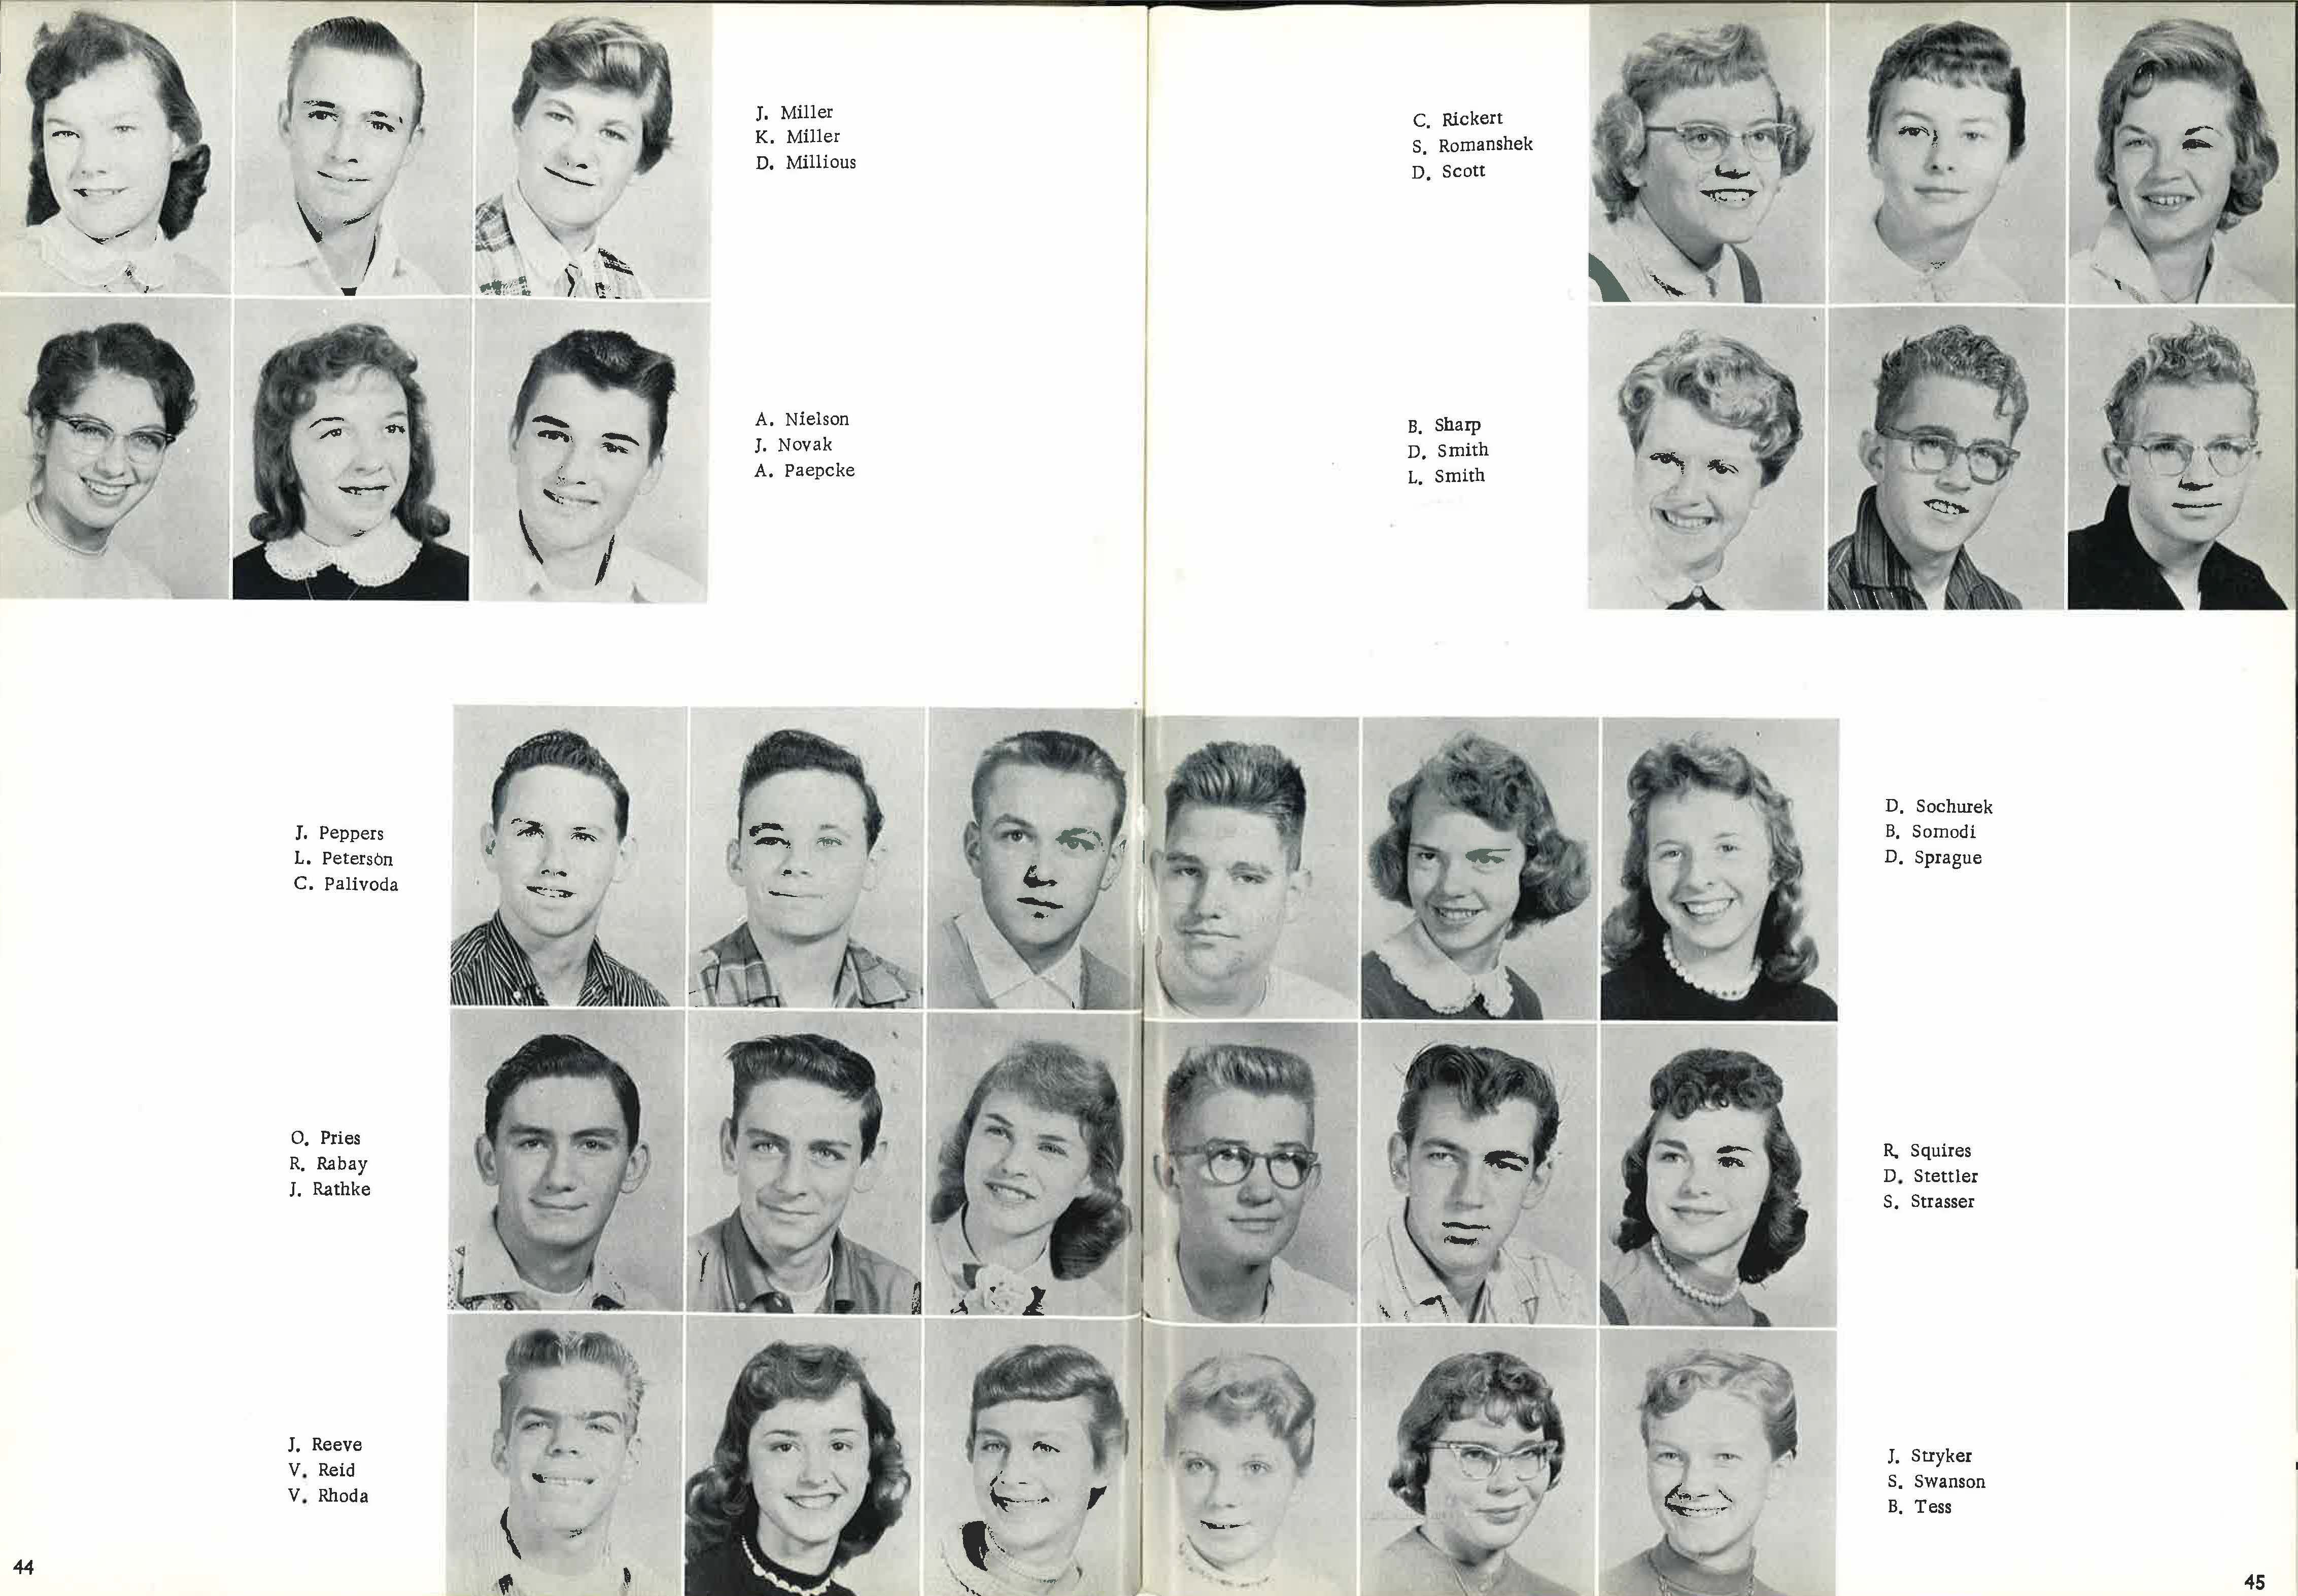 1958_Yearbook_44-45.jpg